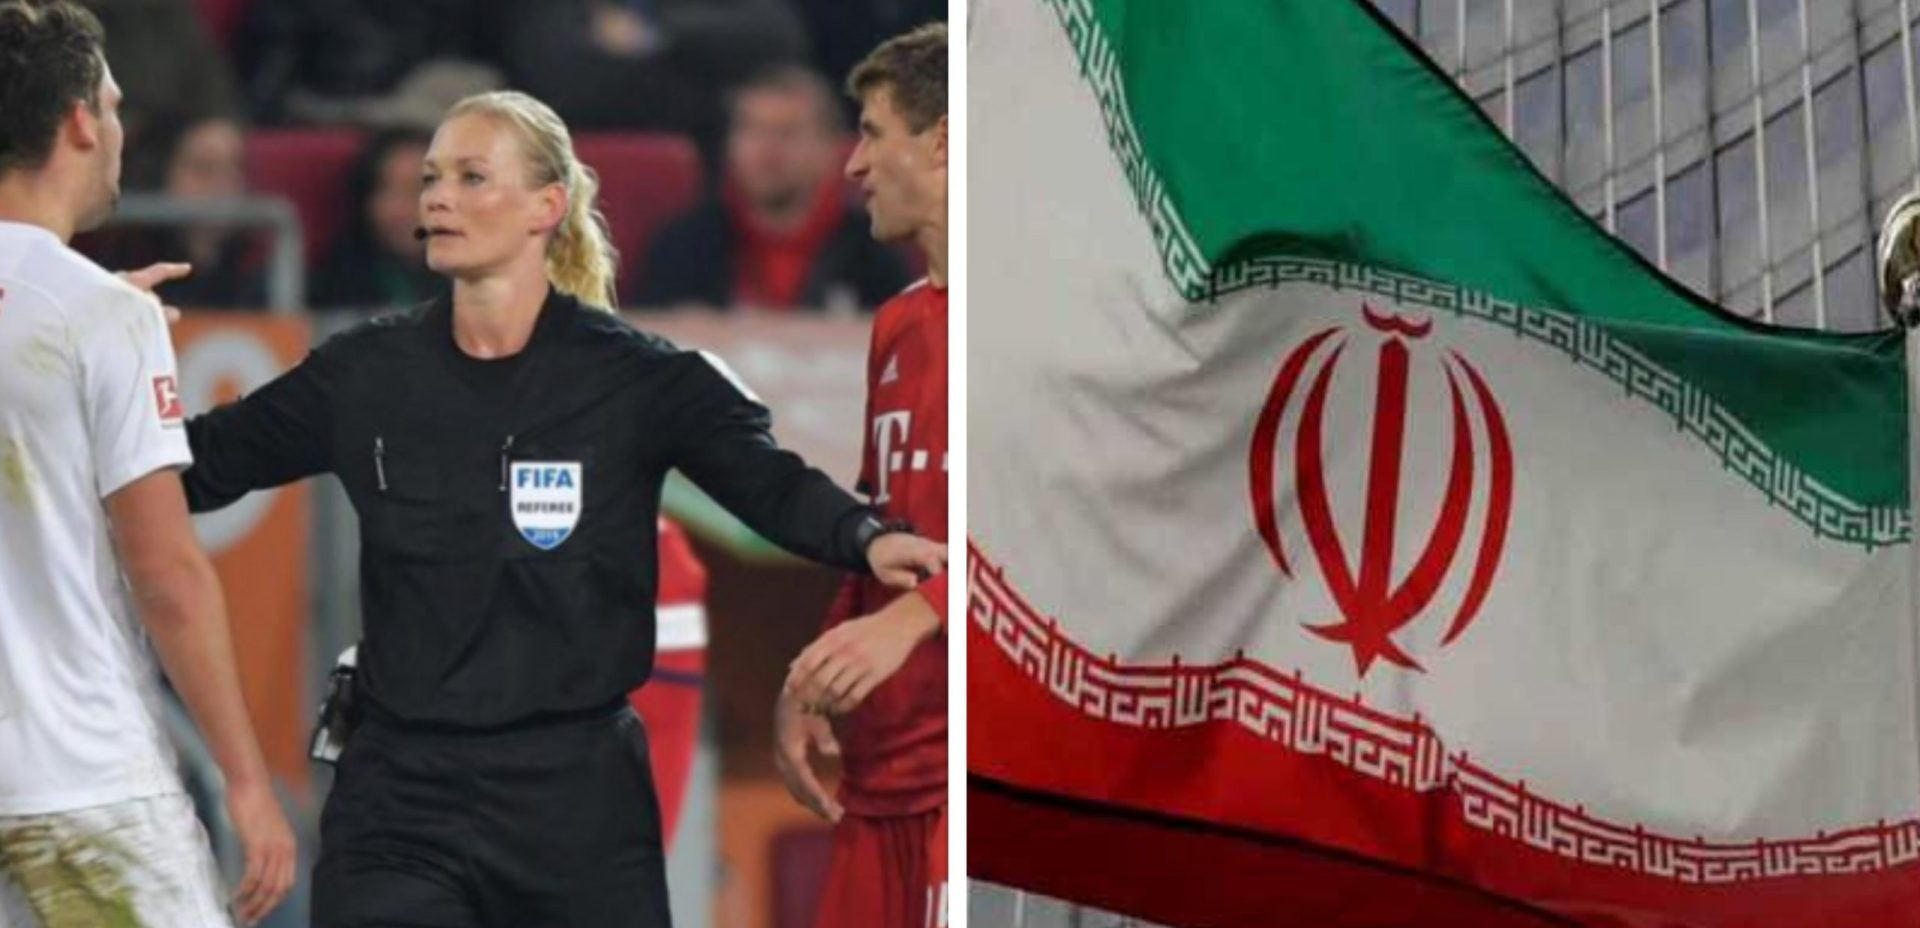 No Eves in football?: Iran's state channel cancels DFL supercup broadcast over a female referee - THE SPORTS ROOM